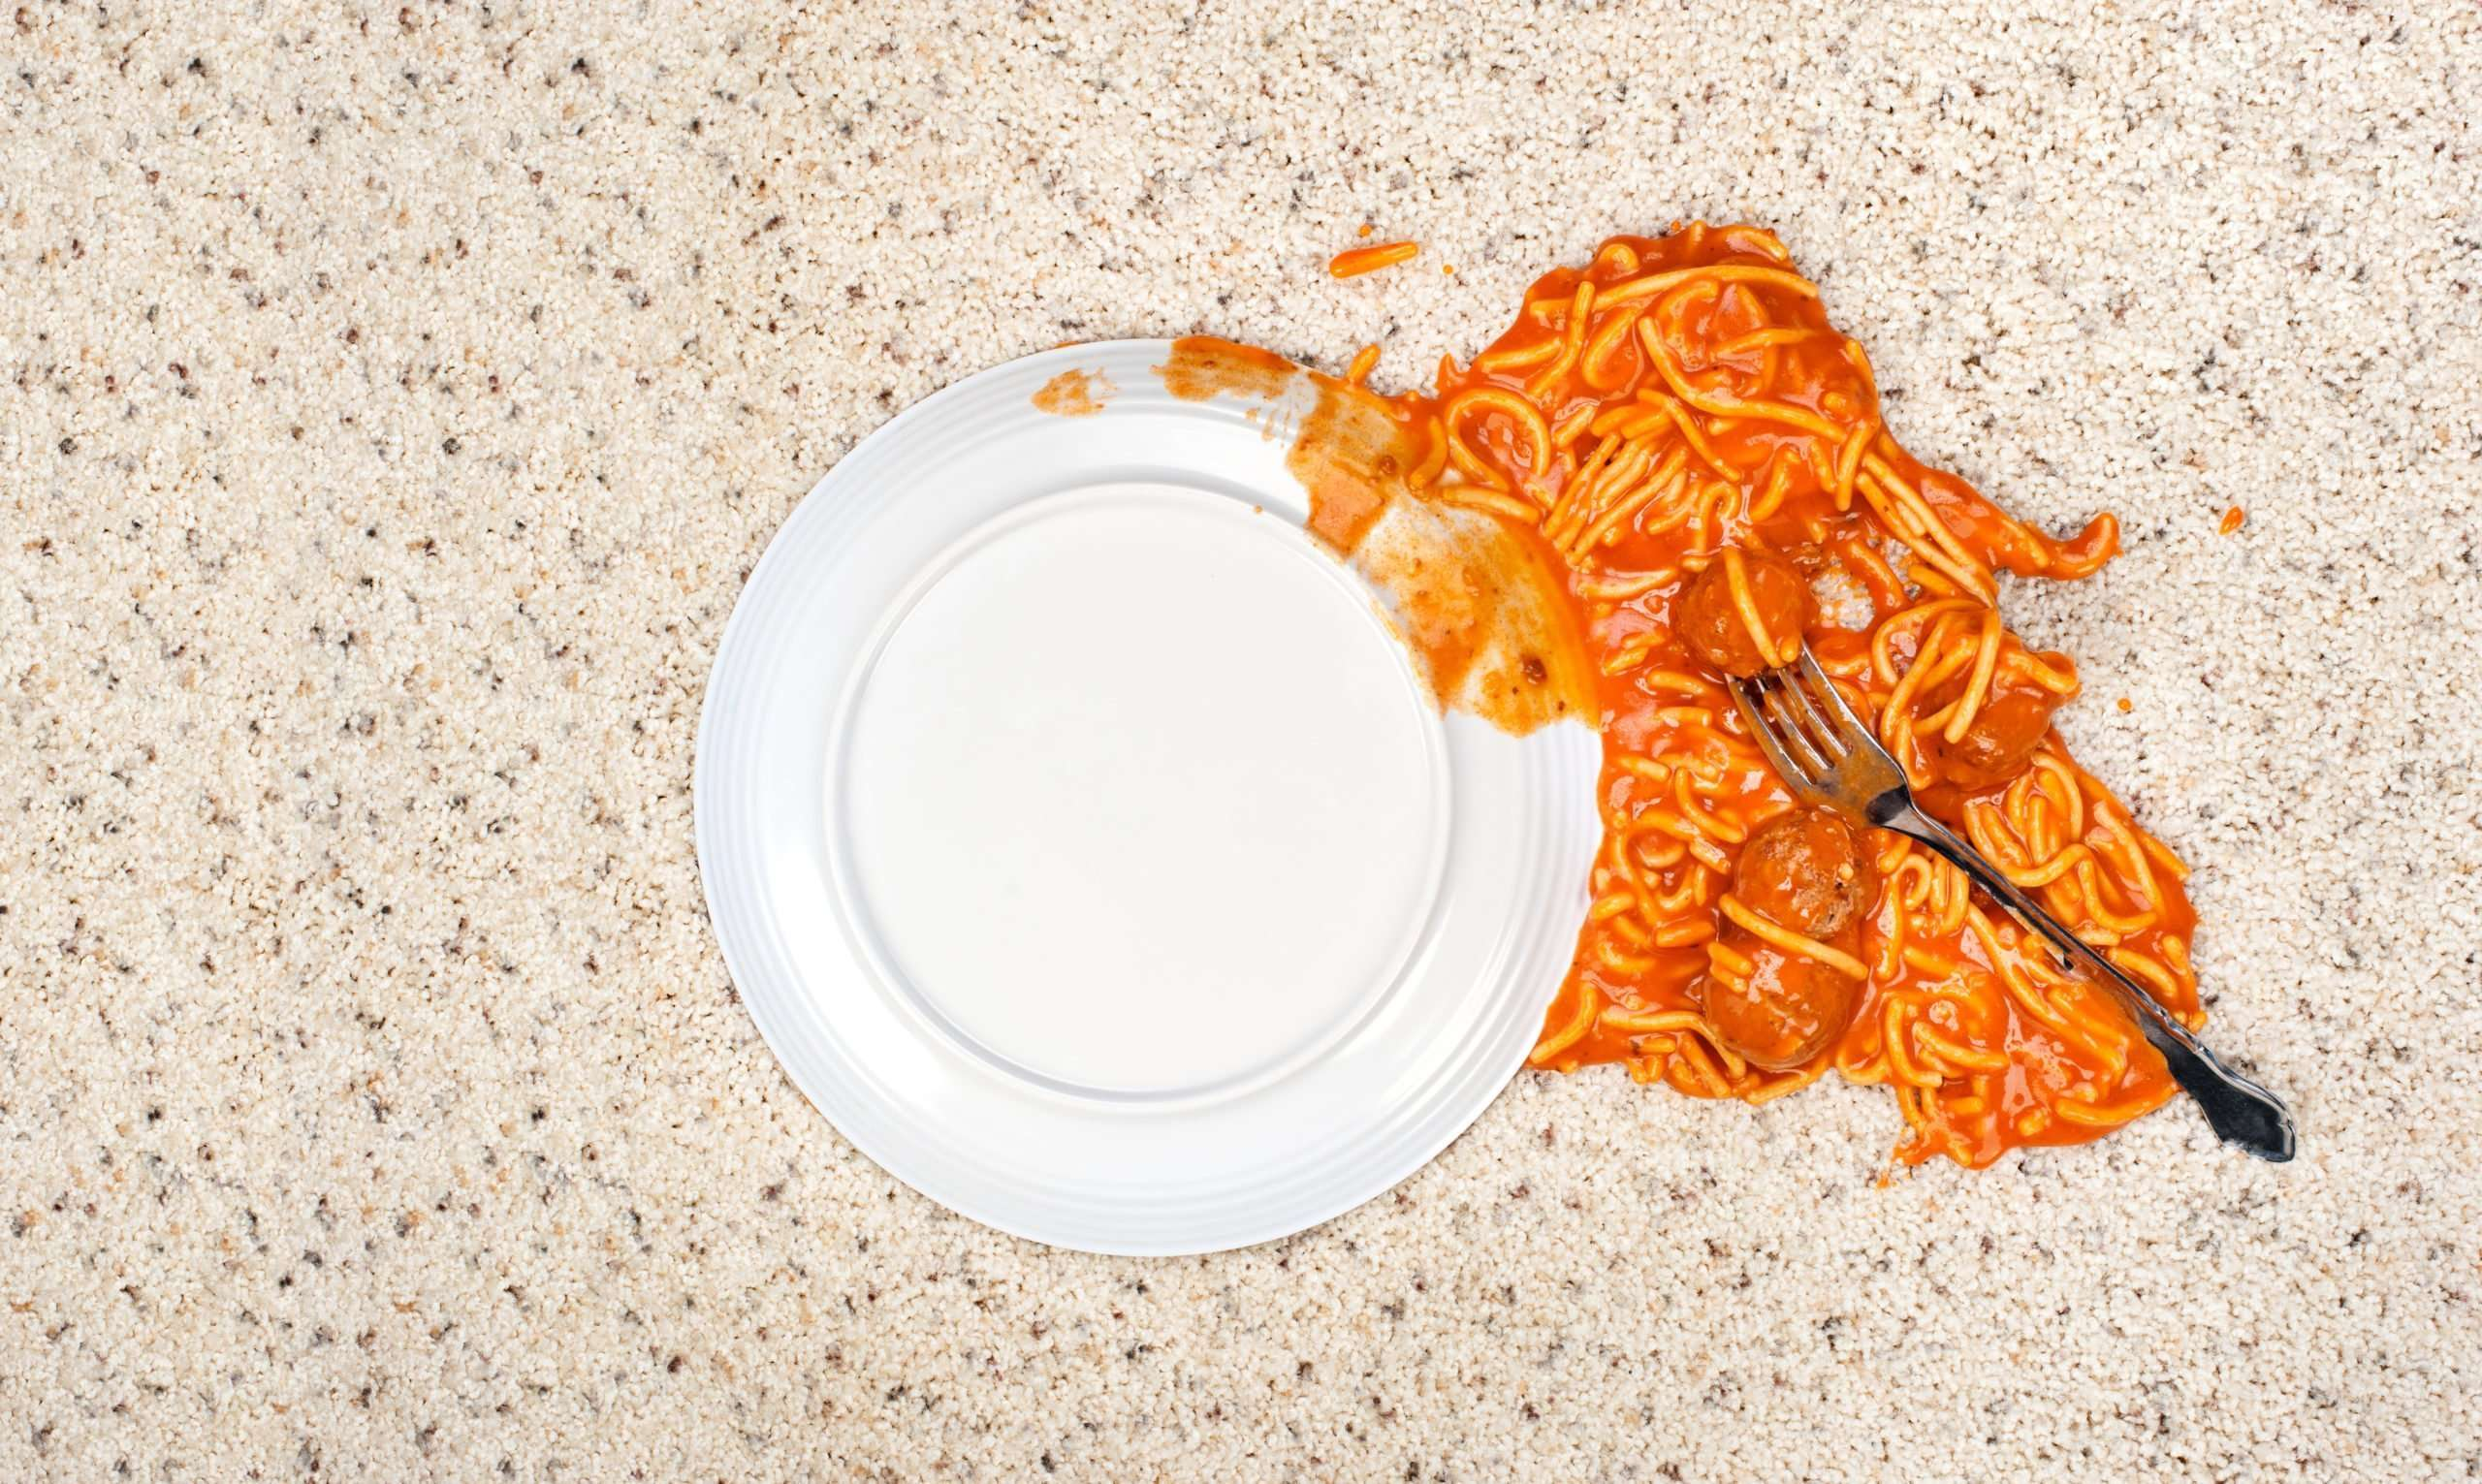 How to remove marinara from carpets